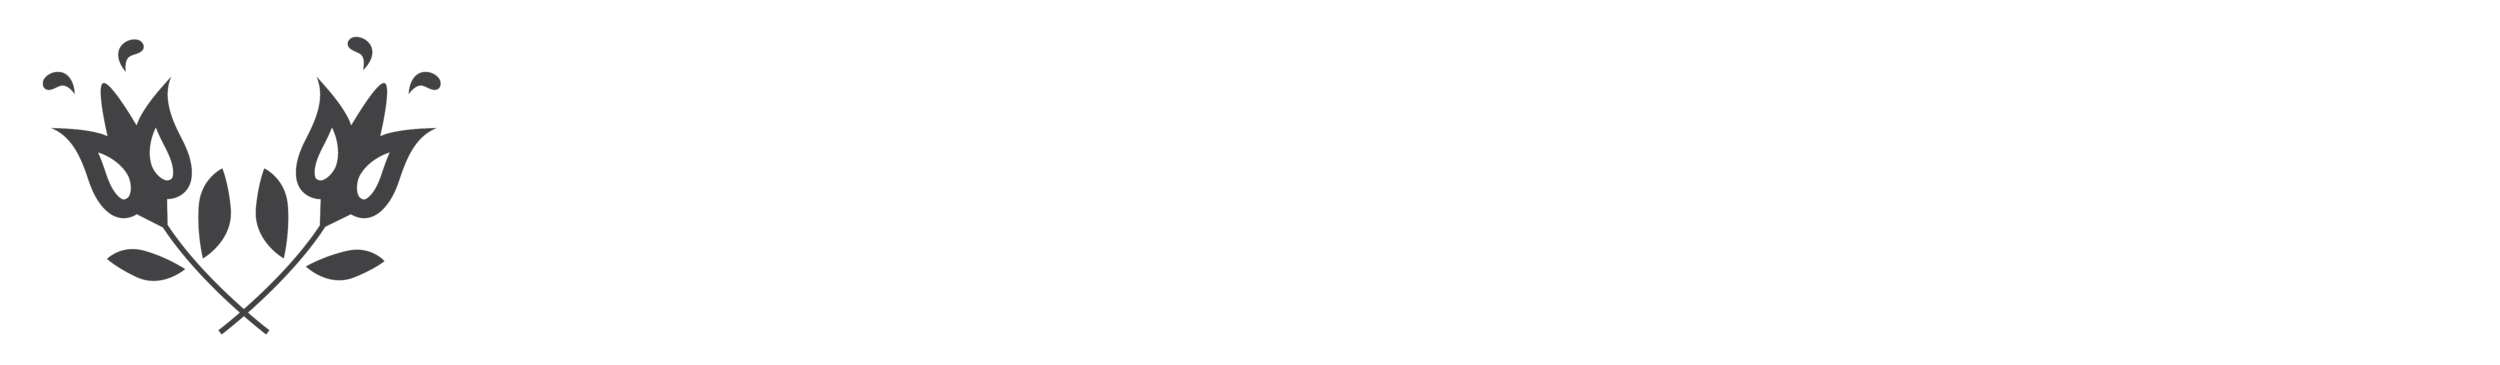 SQ1_Icons-01-01.png